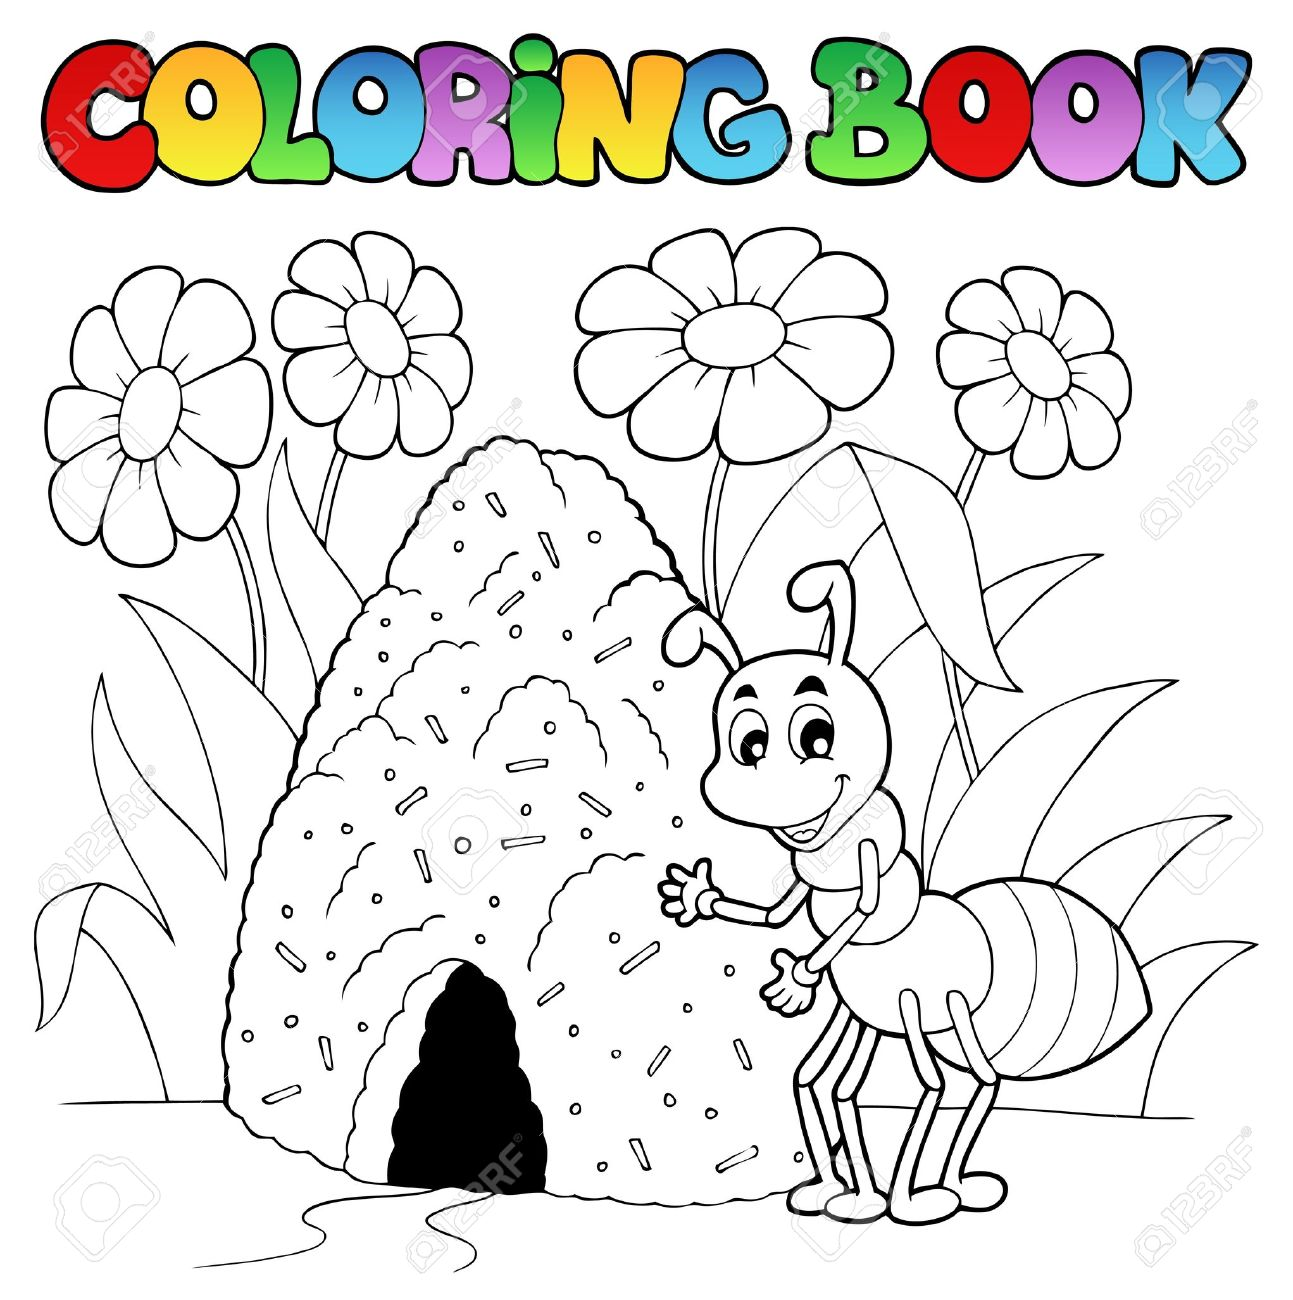 Coloring Book Ant Near Anthill Stock Photo Picture And Royalty Free